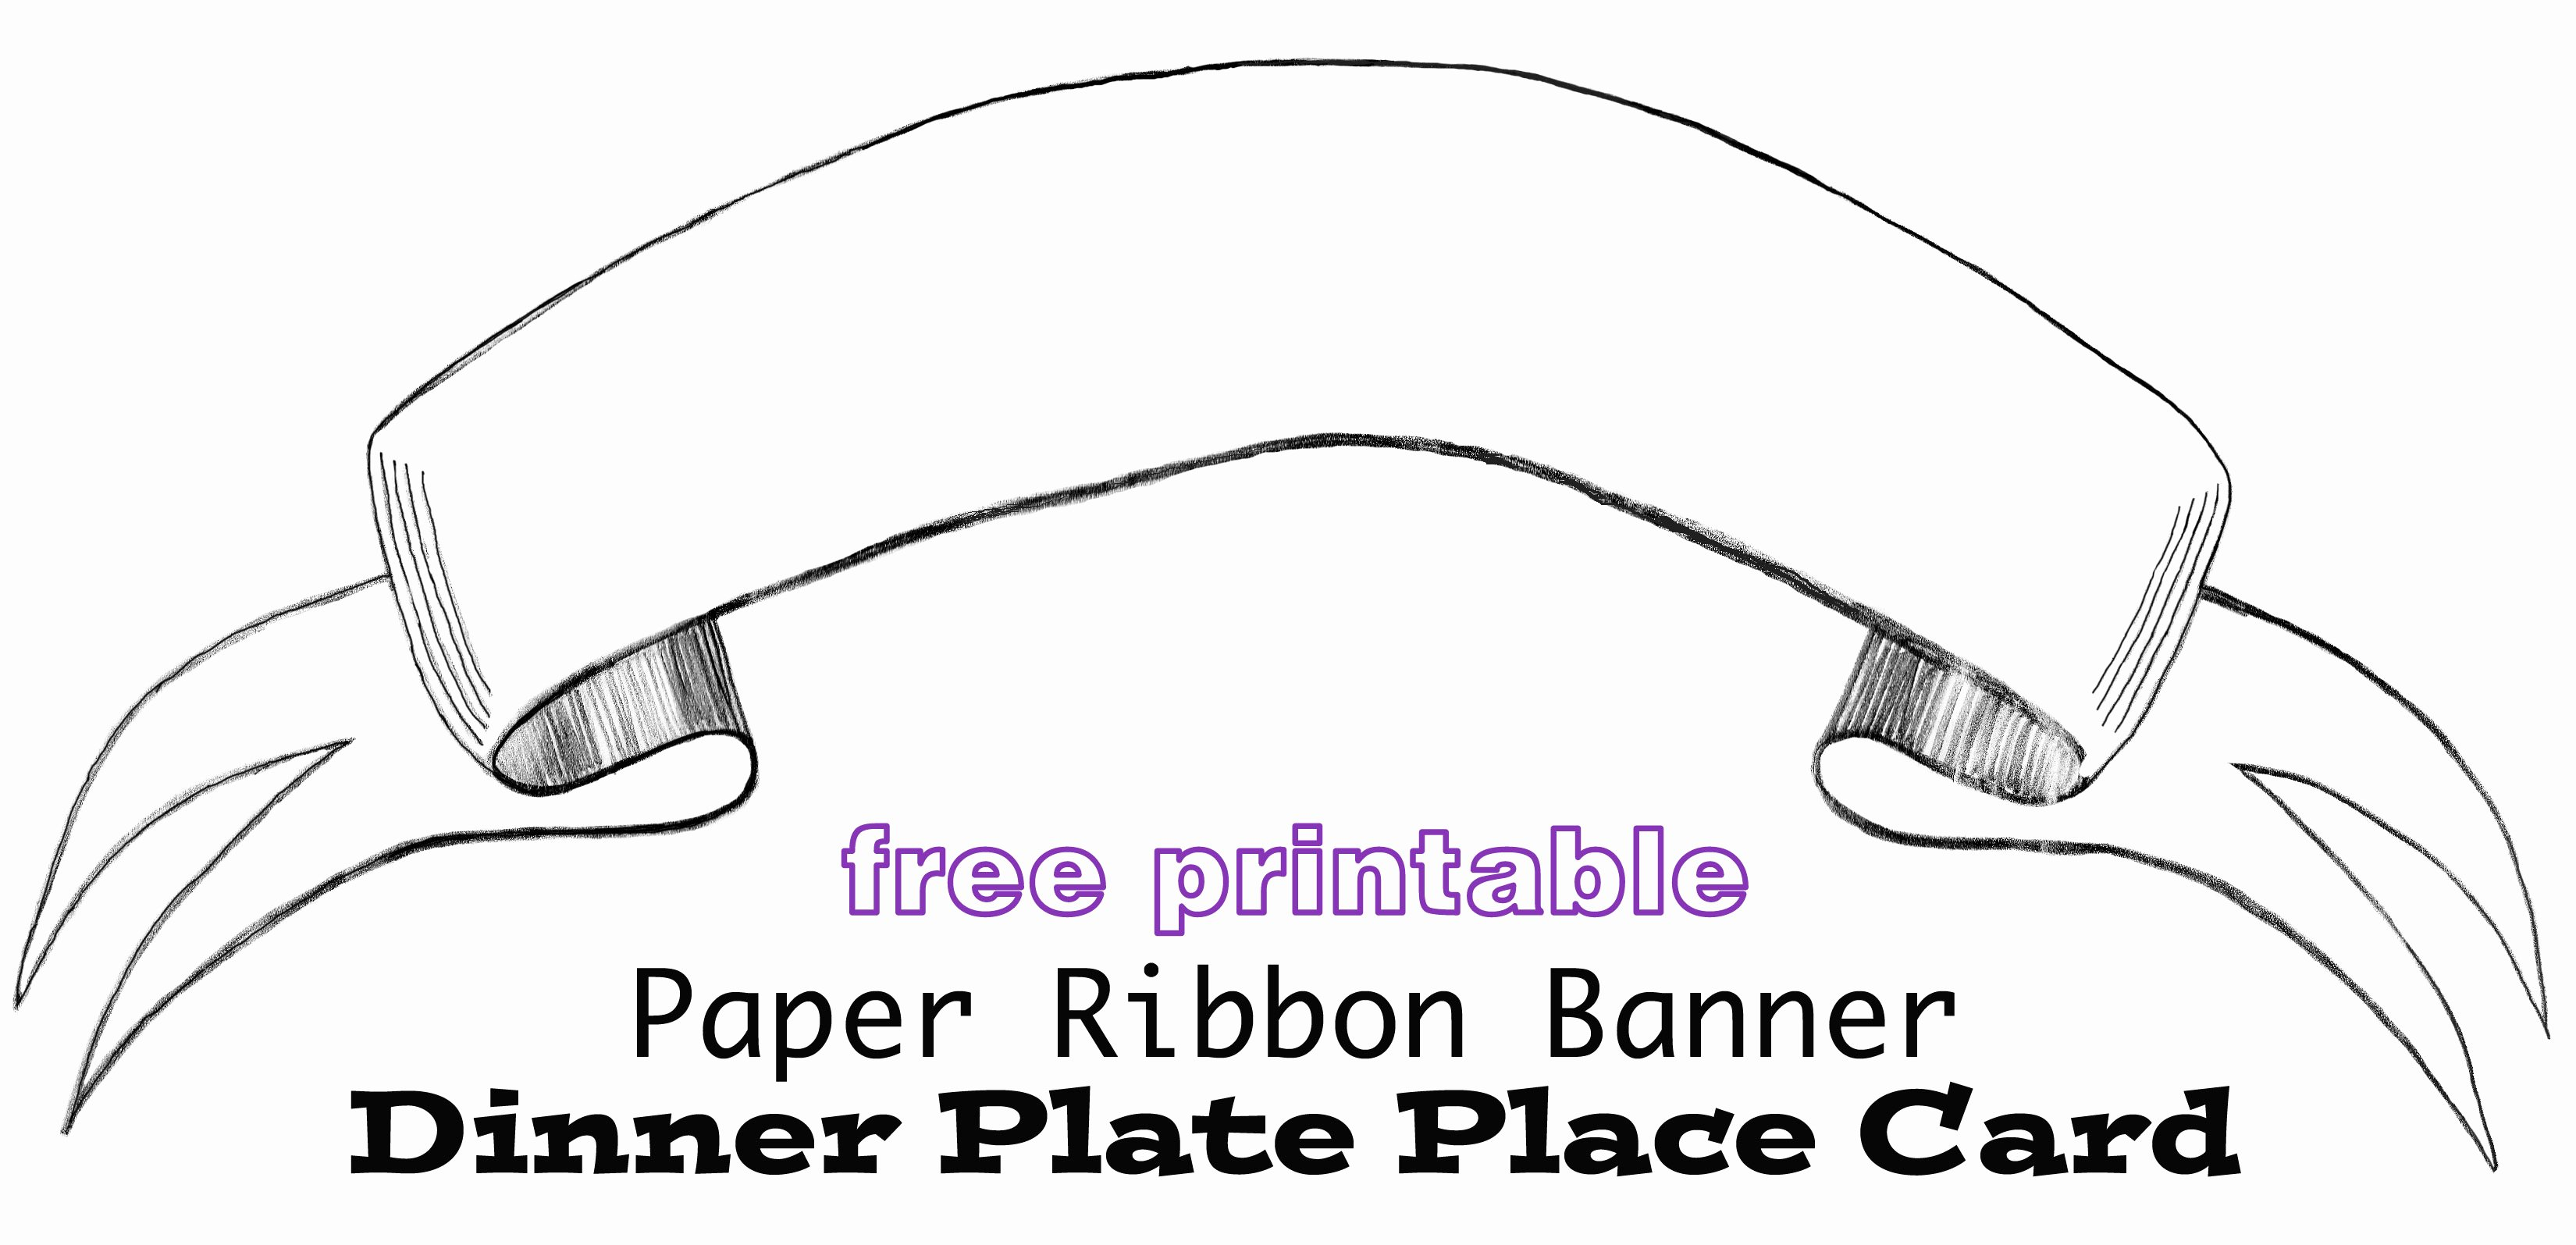 Printable Banner Templates New Printable Paper Banner Dinner Plate Place Card